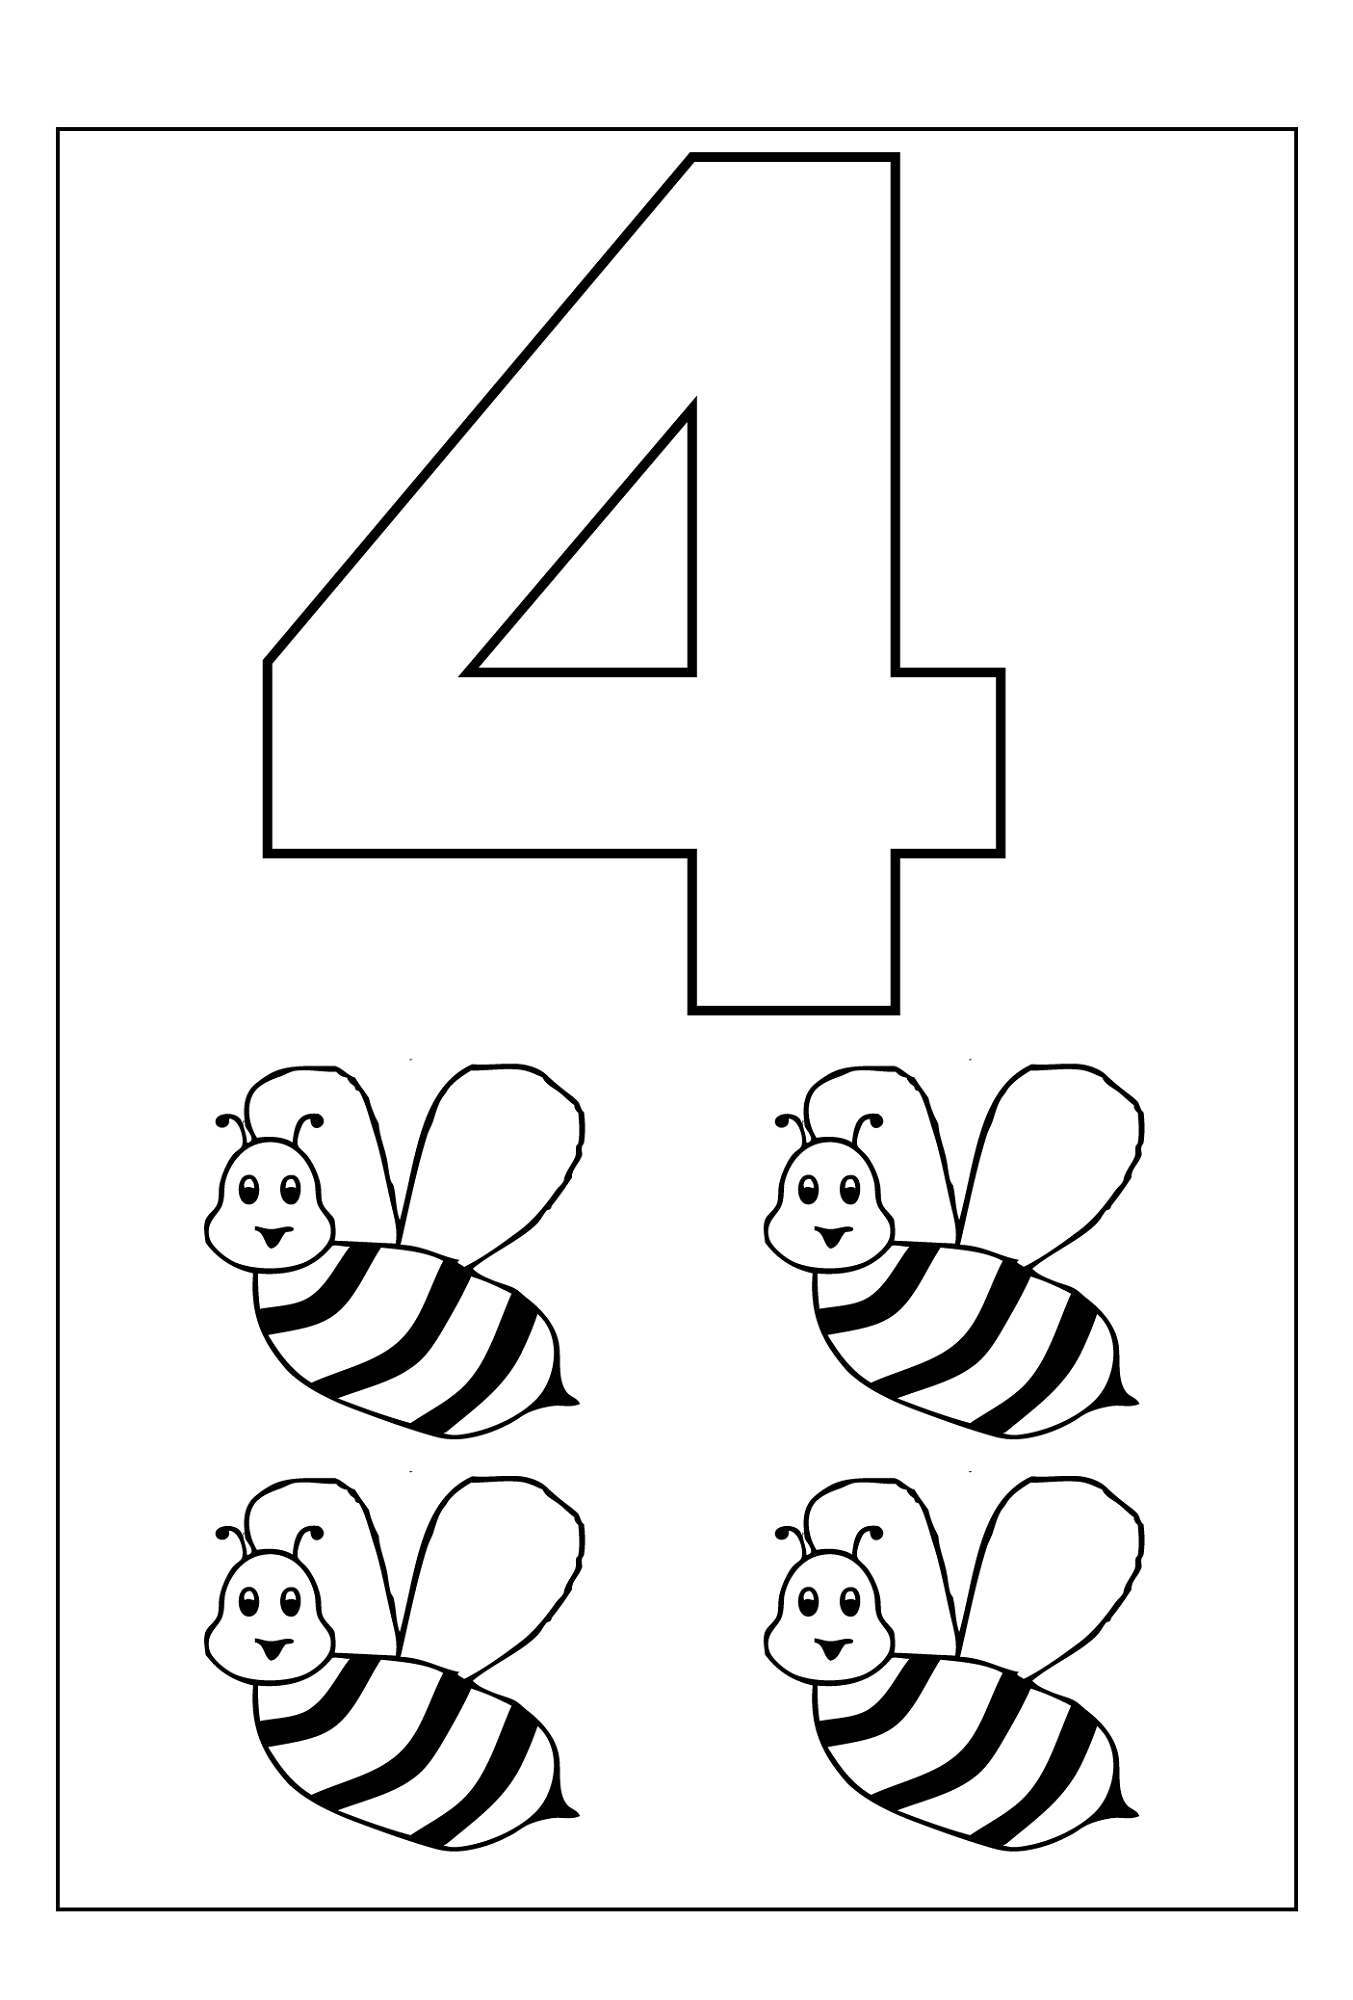 Number 4 Worksheets to Print – Number 4 Worksheets